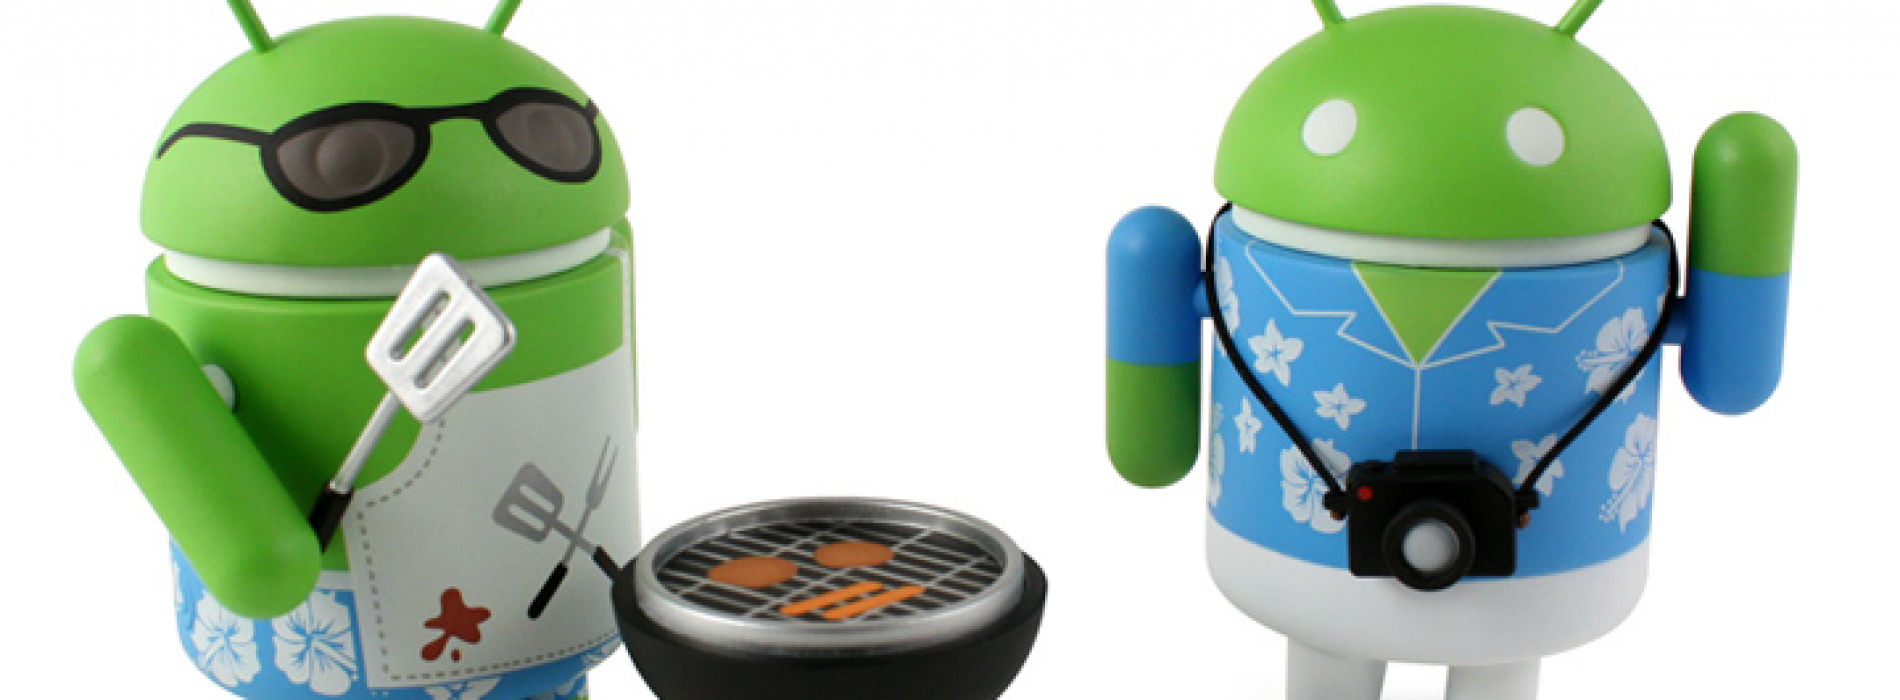 Dyzplastic announces special Big Android BBQ edition Android collectibles